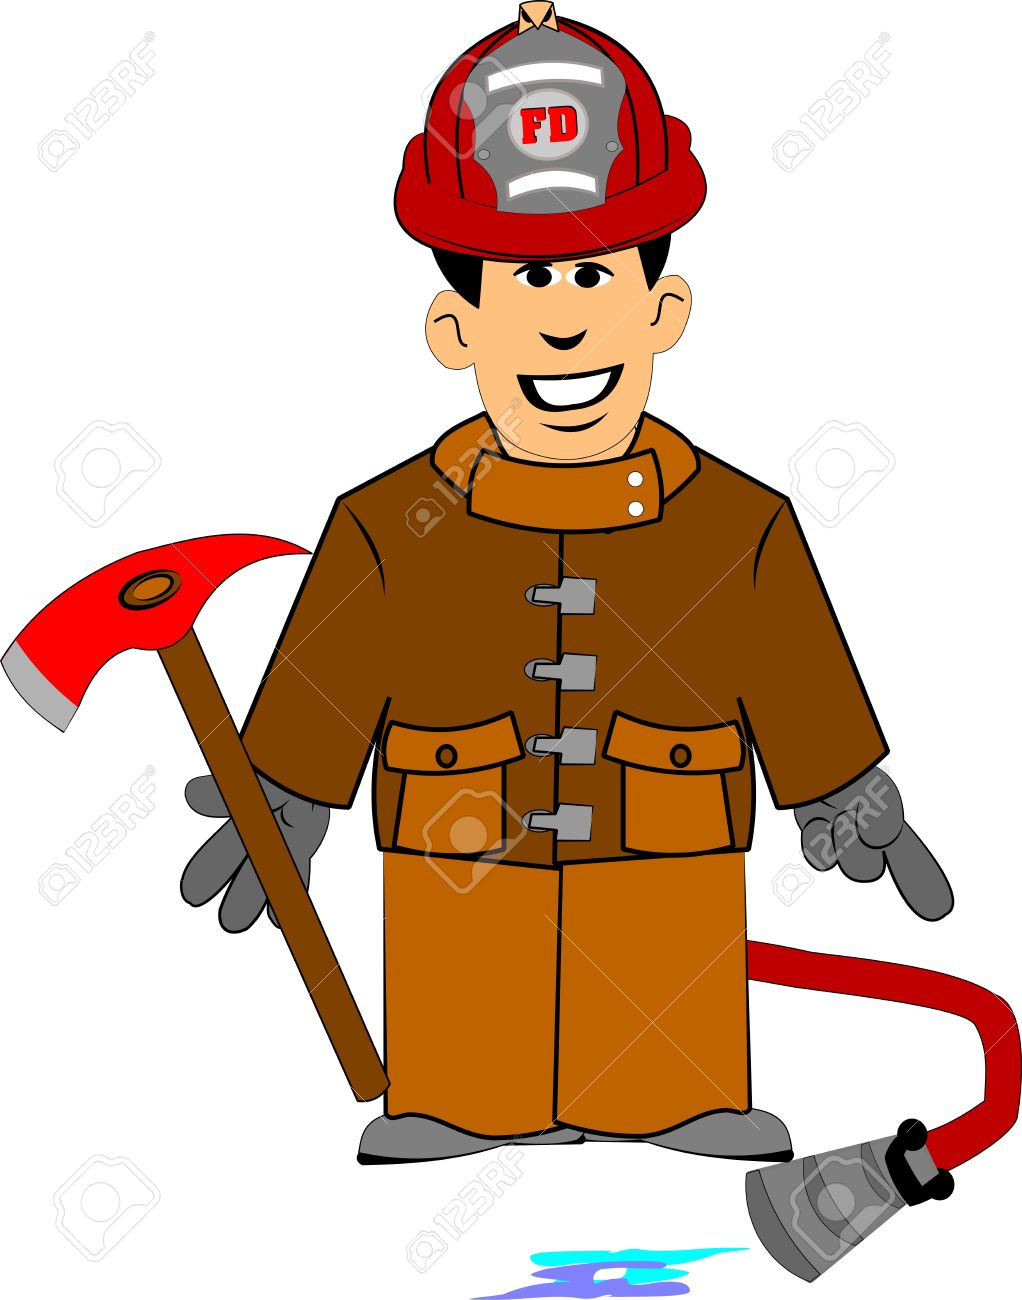 17043996-fireman-clipart-Stock-Vector